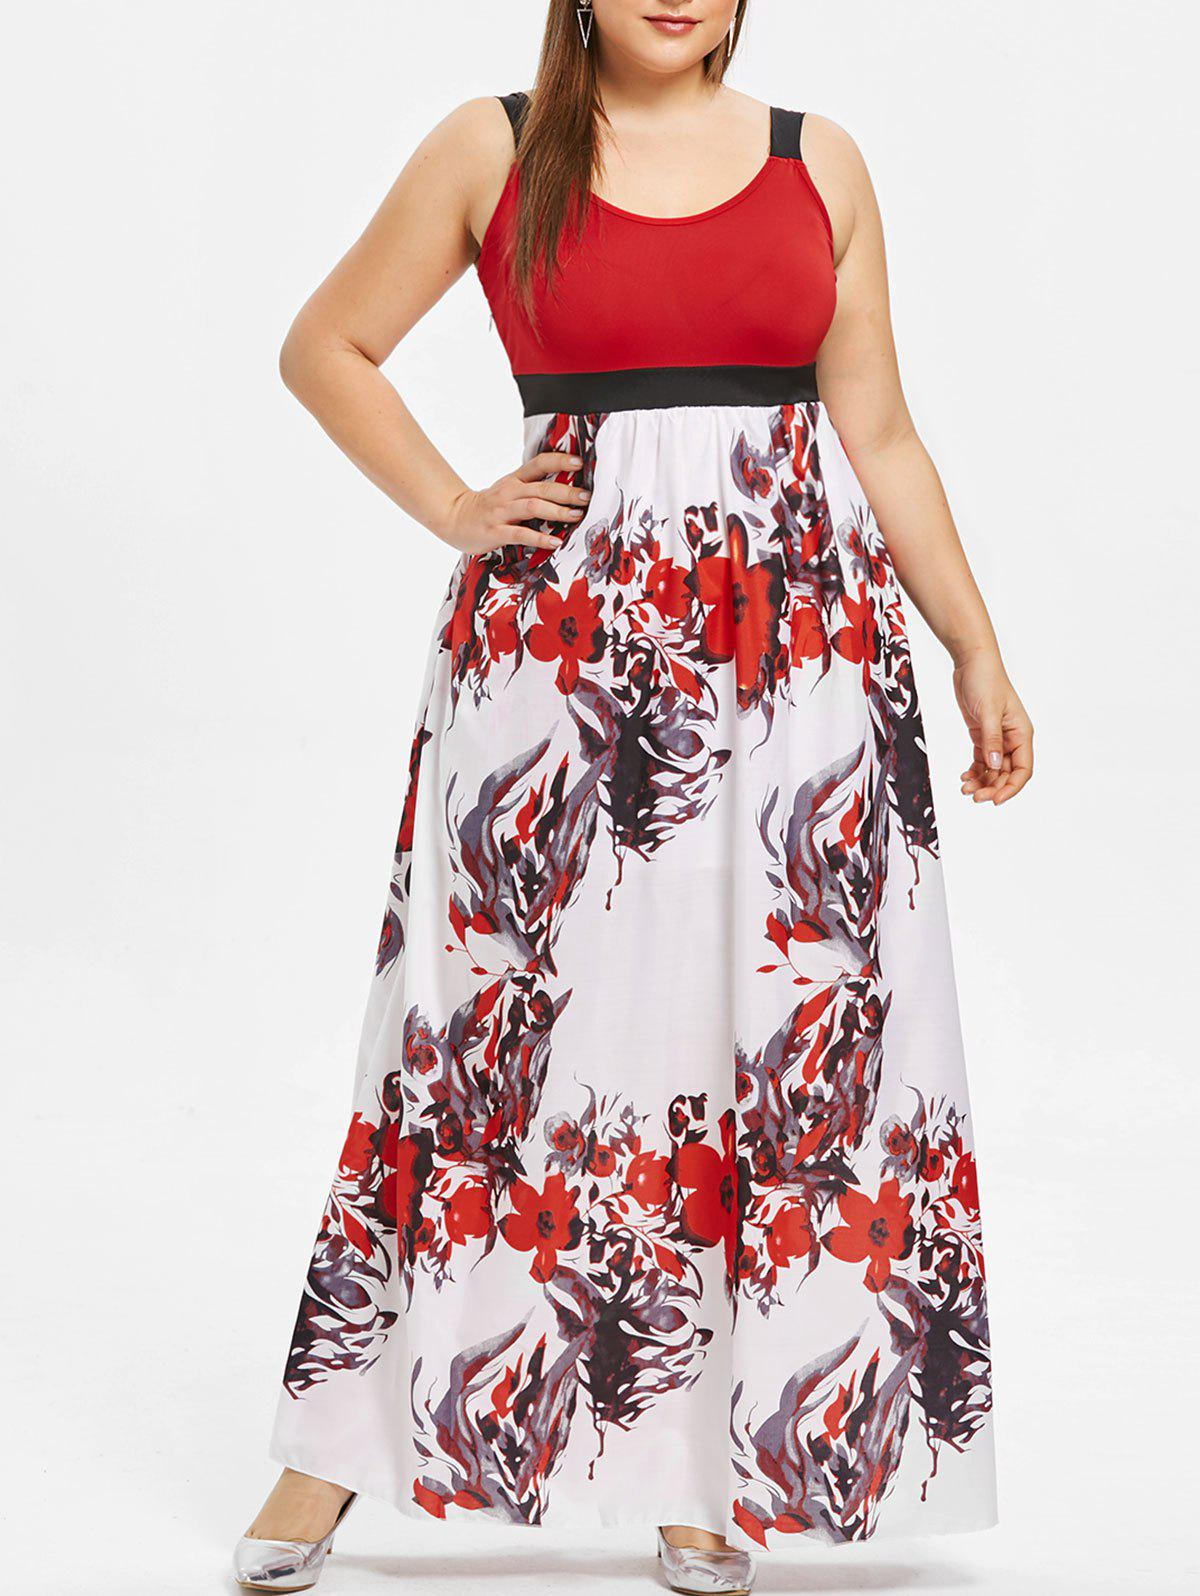 5350964232f4e 50% OFF   2019 Plus Size Sleeveless Floral Print Maxi Dress ...